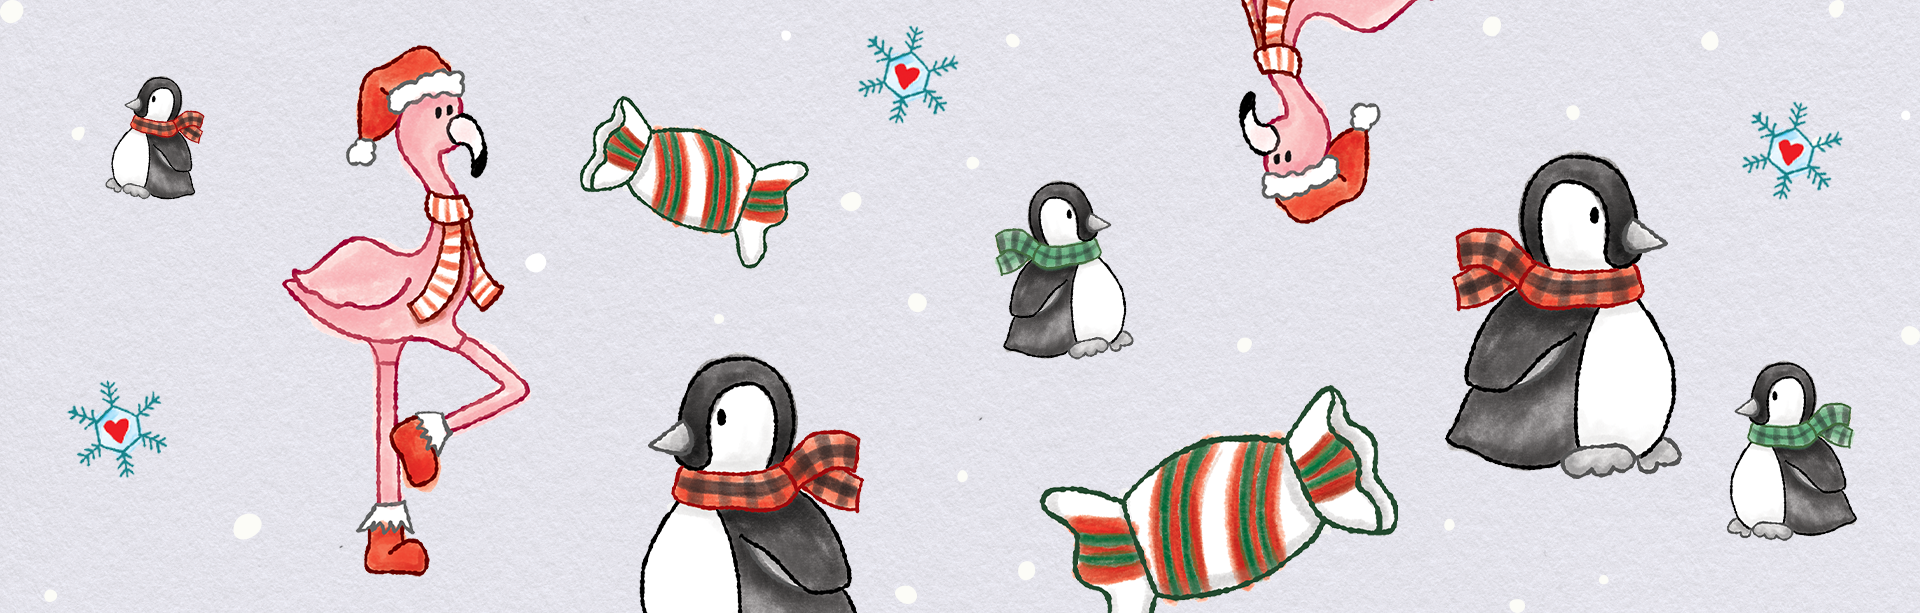 holiday20-banner-1920x613.png